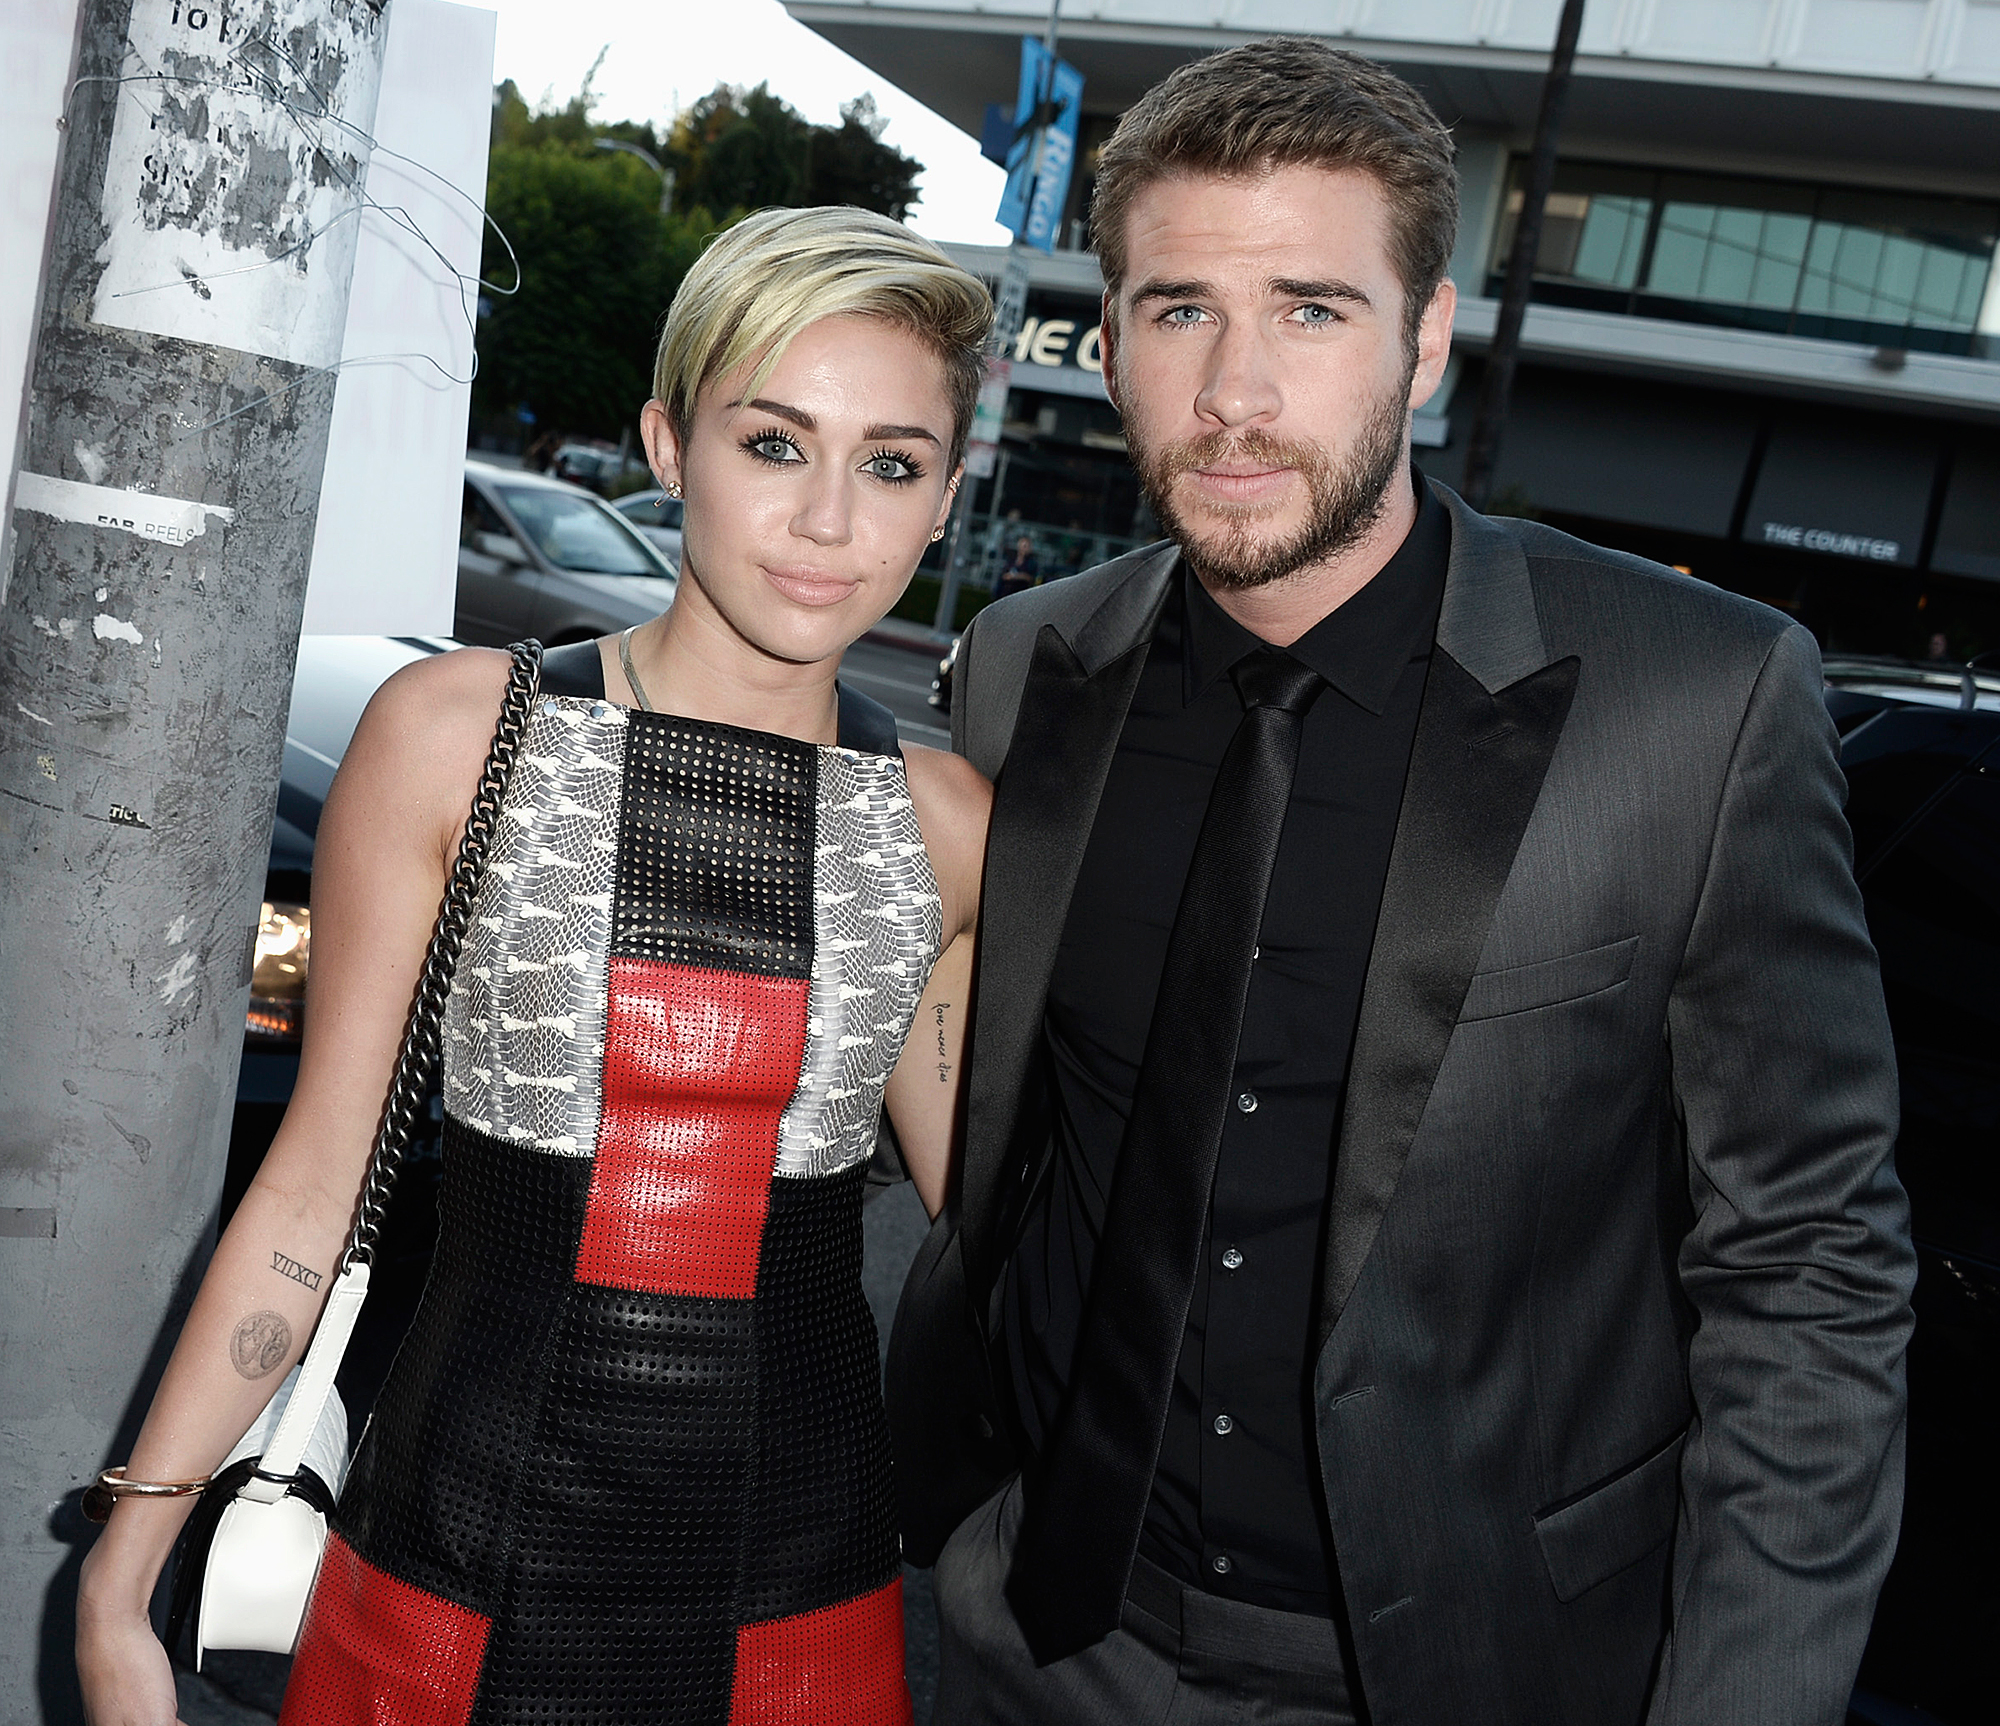 """miley-cyrus-liam-hemsworth - In a sit-down interview with writer Tavi Gevinson for the May 2014 issue of ELLE , Cyrus opened up about feeling anxious when she was attached to the network that launched her to stardom, as well as when she was with now-husband Liam Hemsworth , from whom she split in 2013 before rekindling their romance . """"When I went through a really intense breakup — you know, I was engaged — and when I was with [Liam] or when I was on Disney, the thing that gave me the most anxiety was not knowing what to do with myself when Disney wasn't there to carry me anymore or if I didn't have him,"""" she said at the time."""